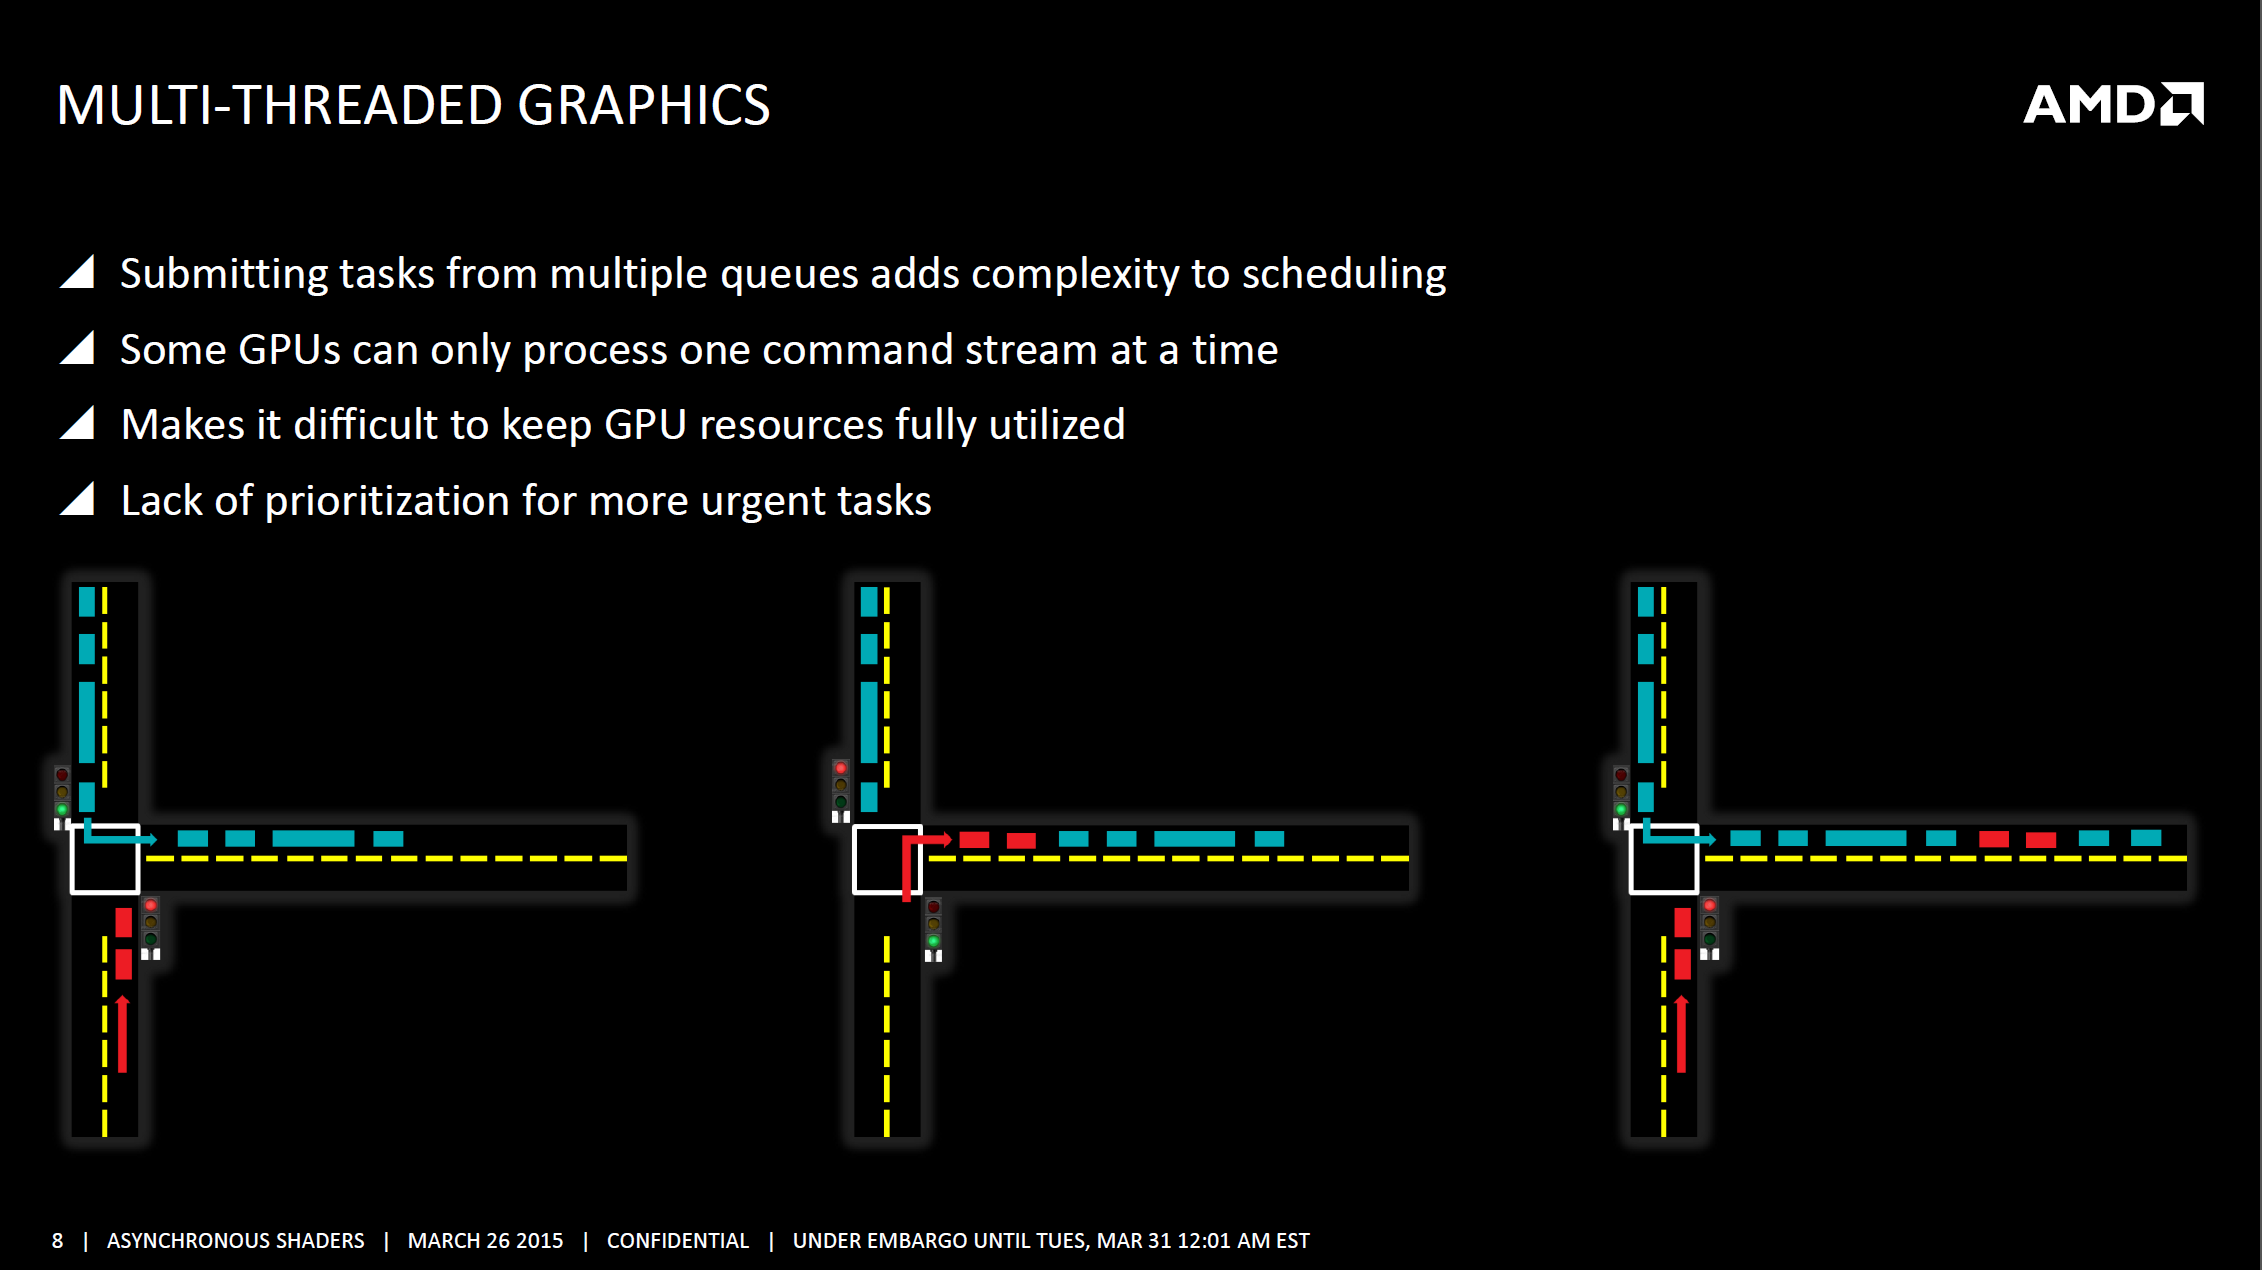 Multithreaded Graphics